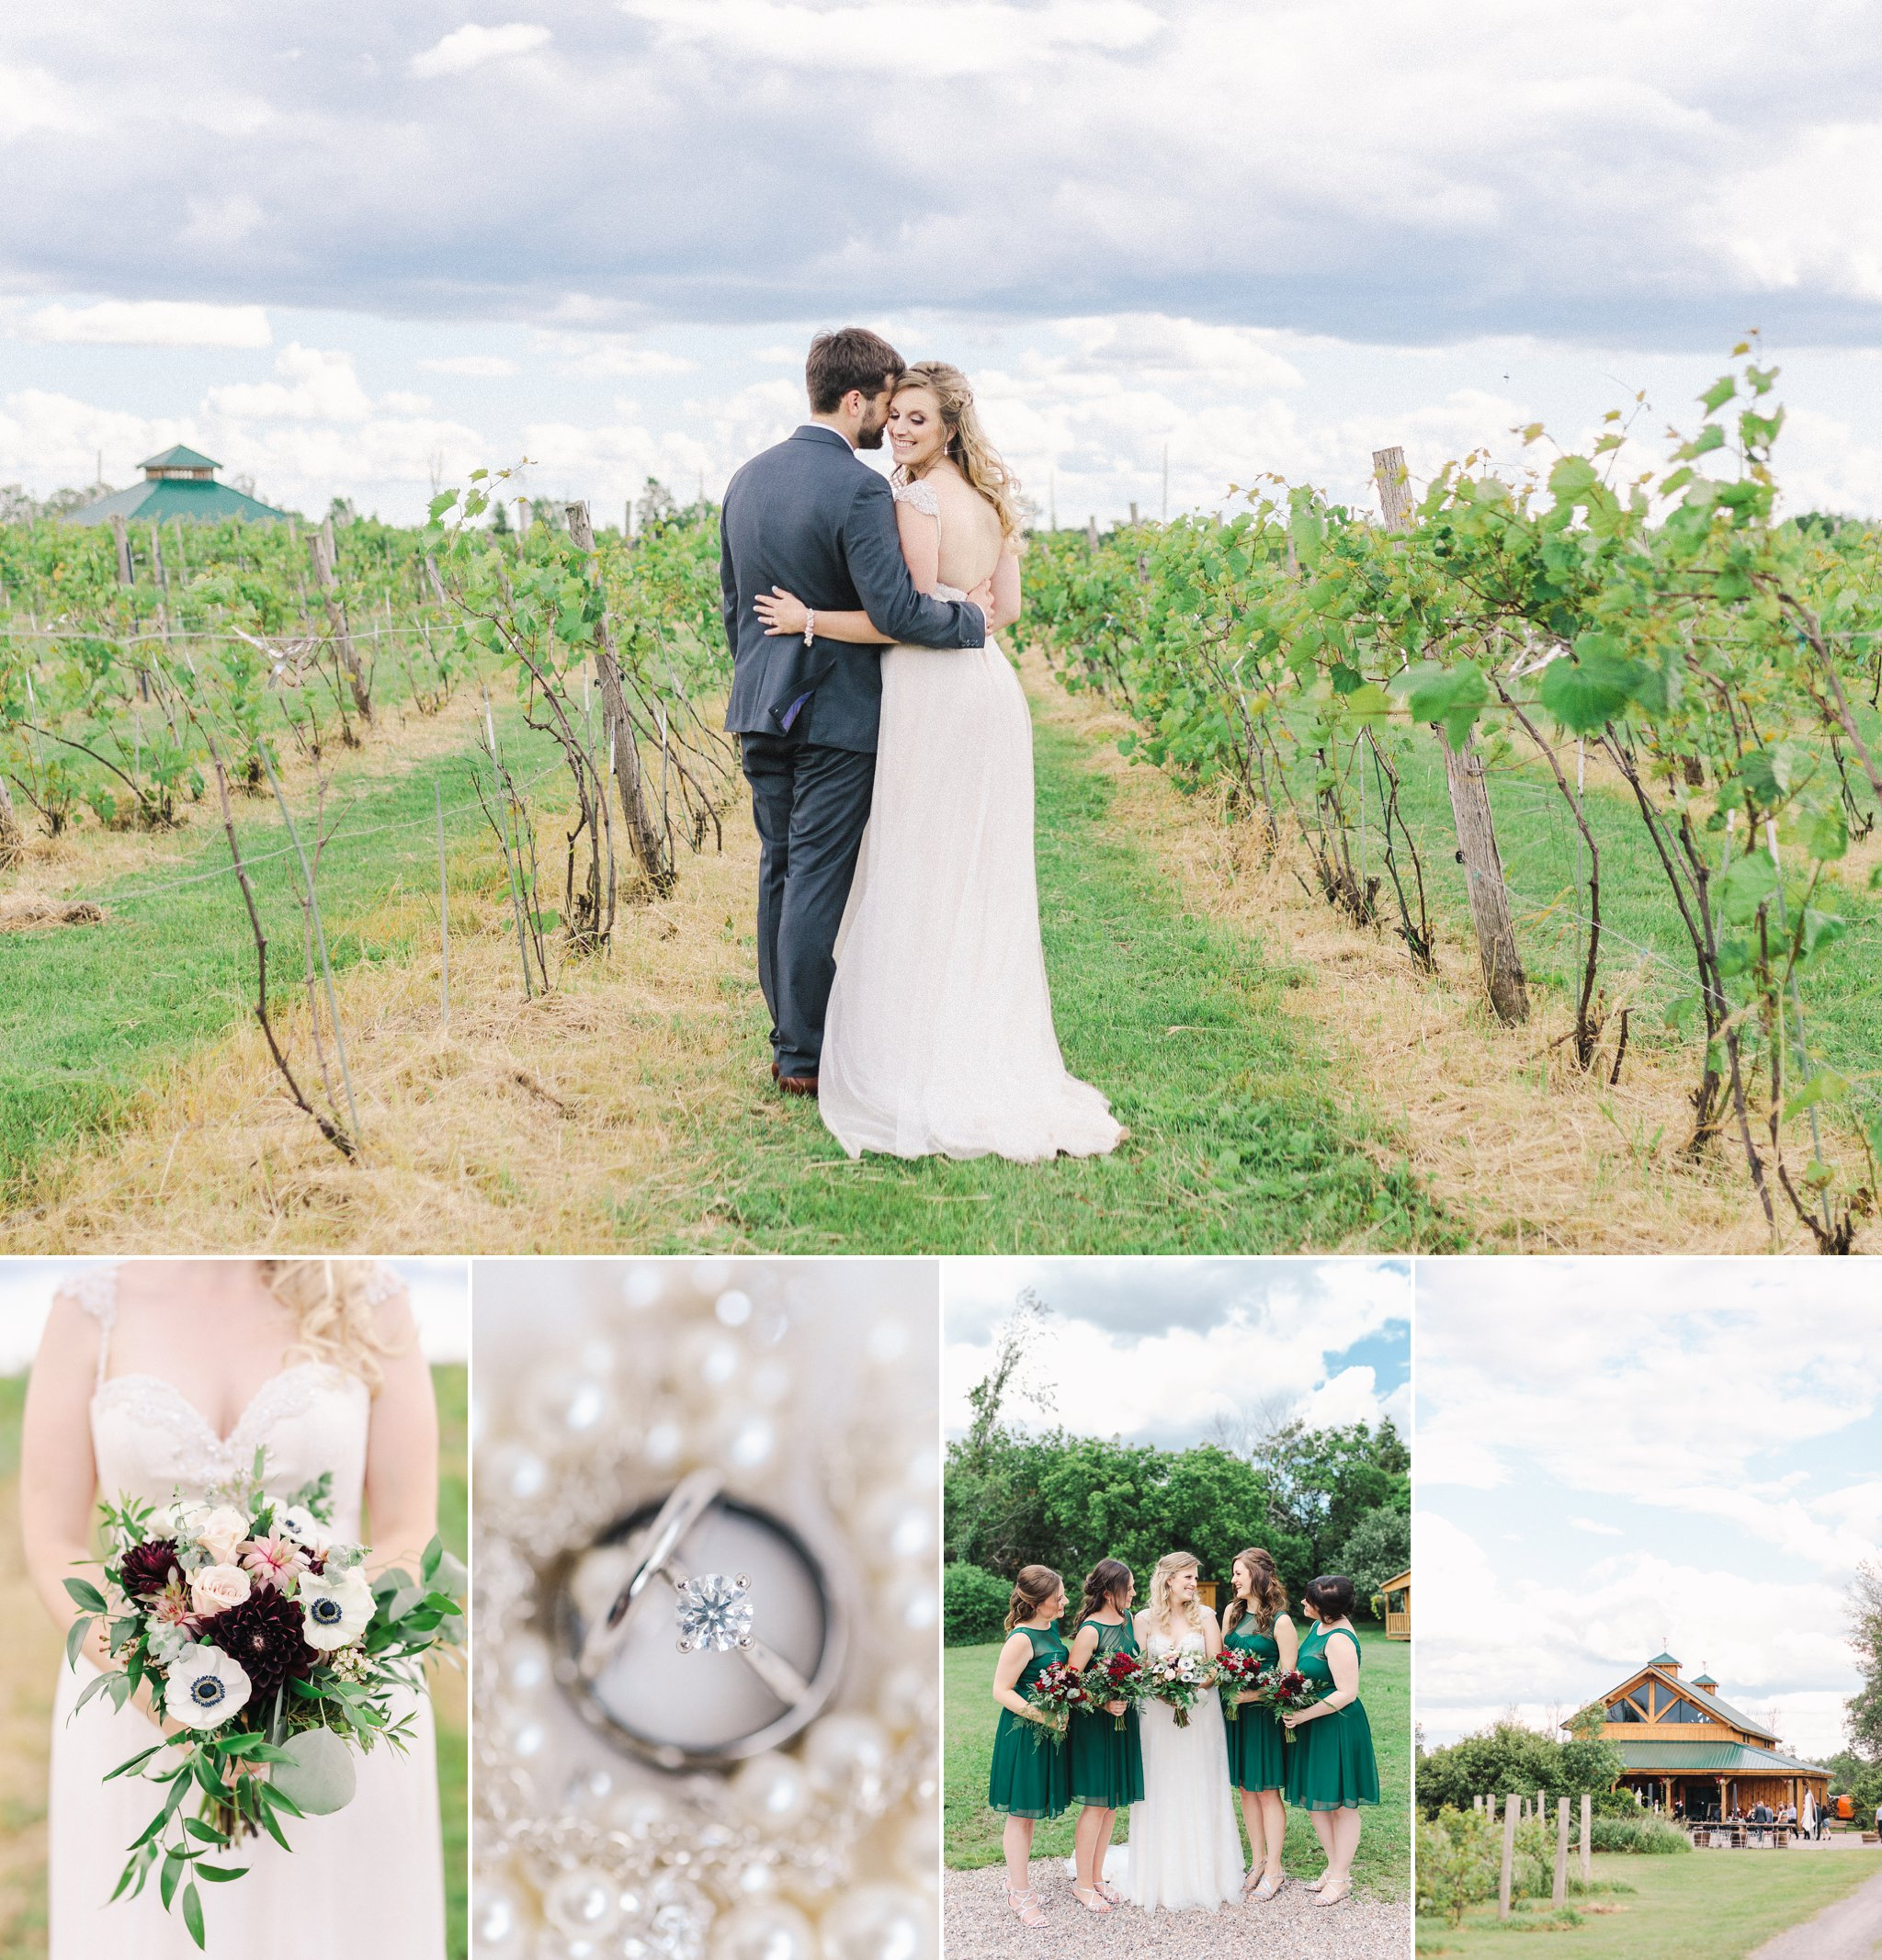 Emerald green bridesmaids dresses at their Jabulani vineyard wedding photos, Amy Pinder Photography, Ottawa wedding photographer